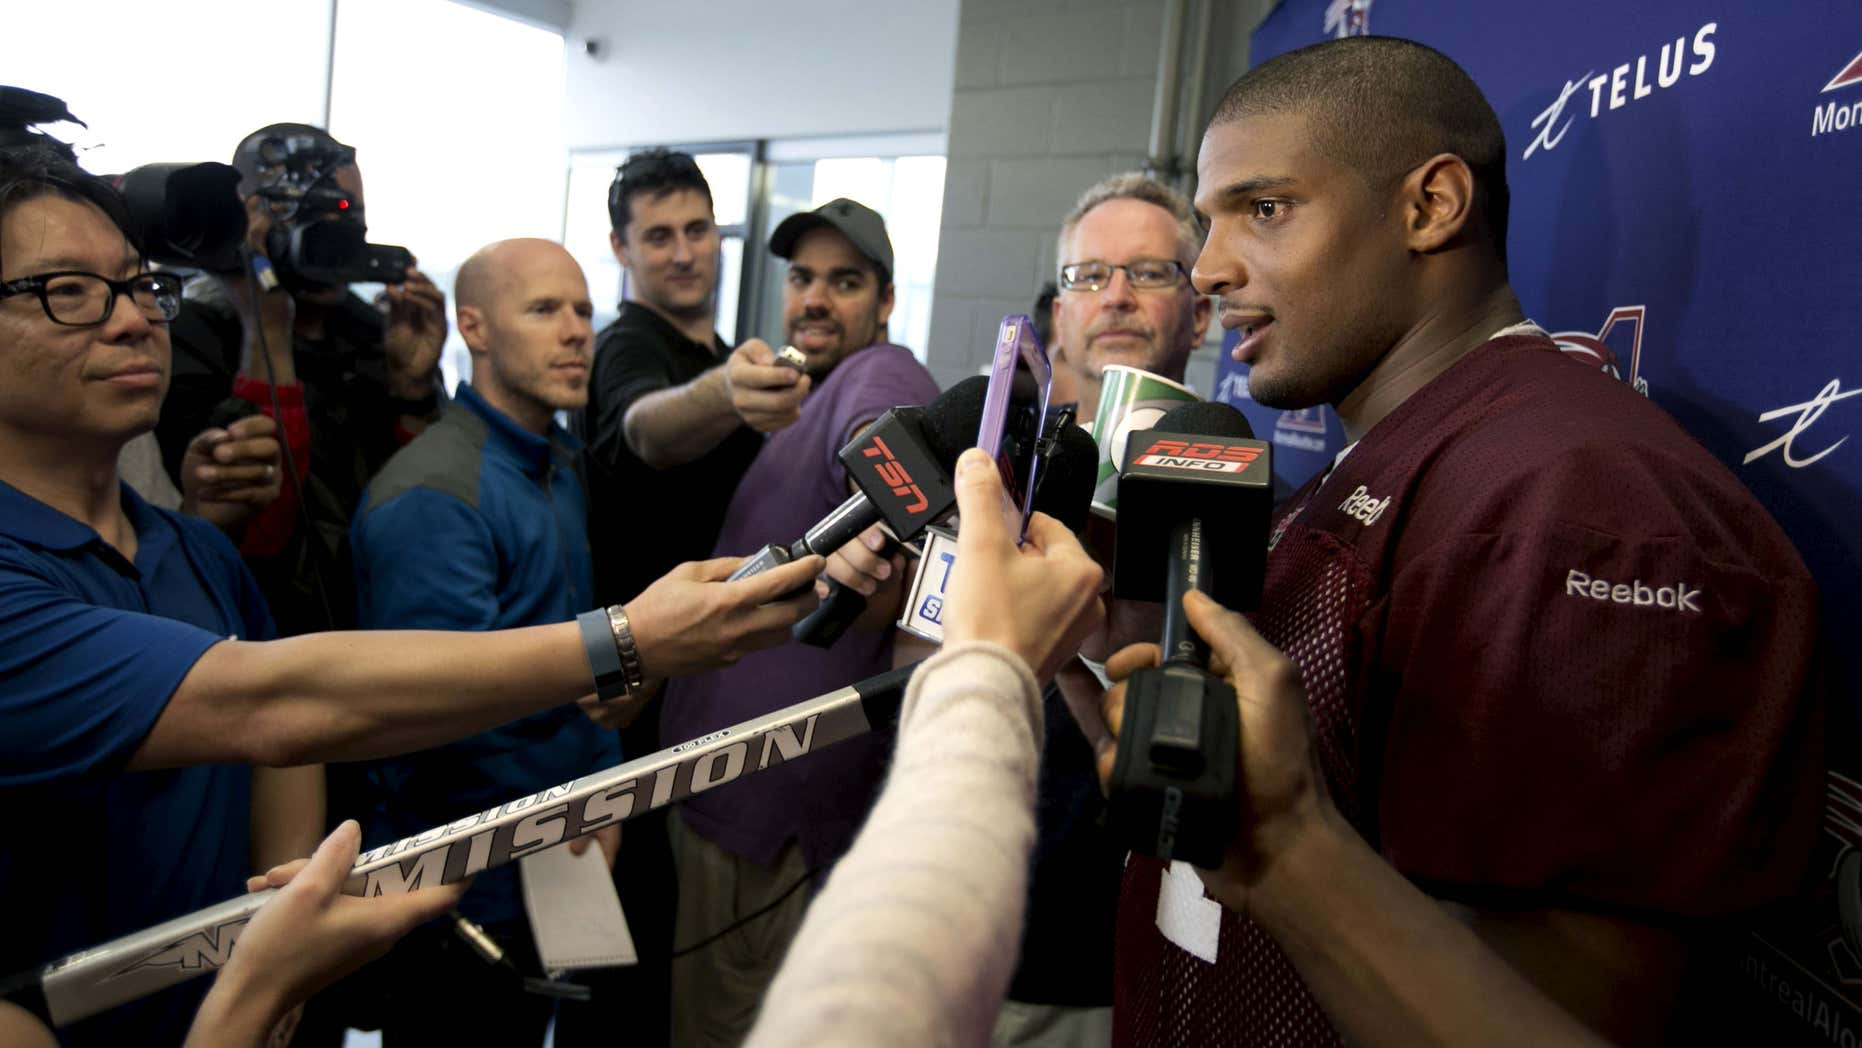 May 27, 2015: Michael Sam, newly signed defensive end for the Montreal Alouettes CFL football team talks to the media following his first day of rookie training camp in Sherbrooke, Quebec .